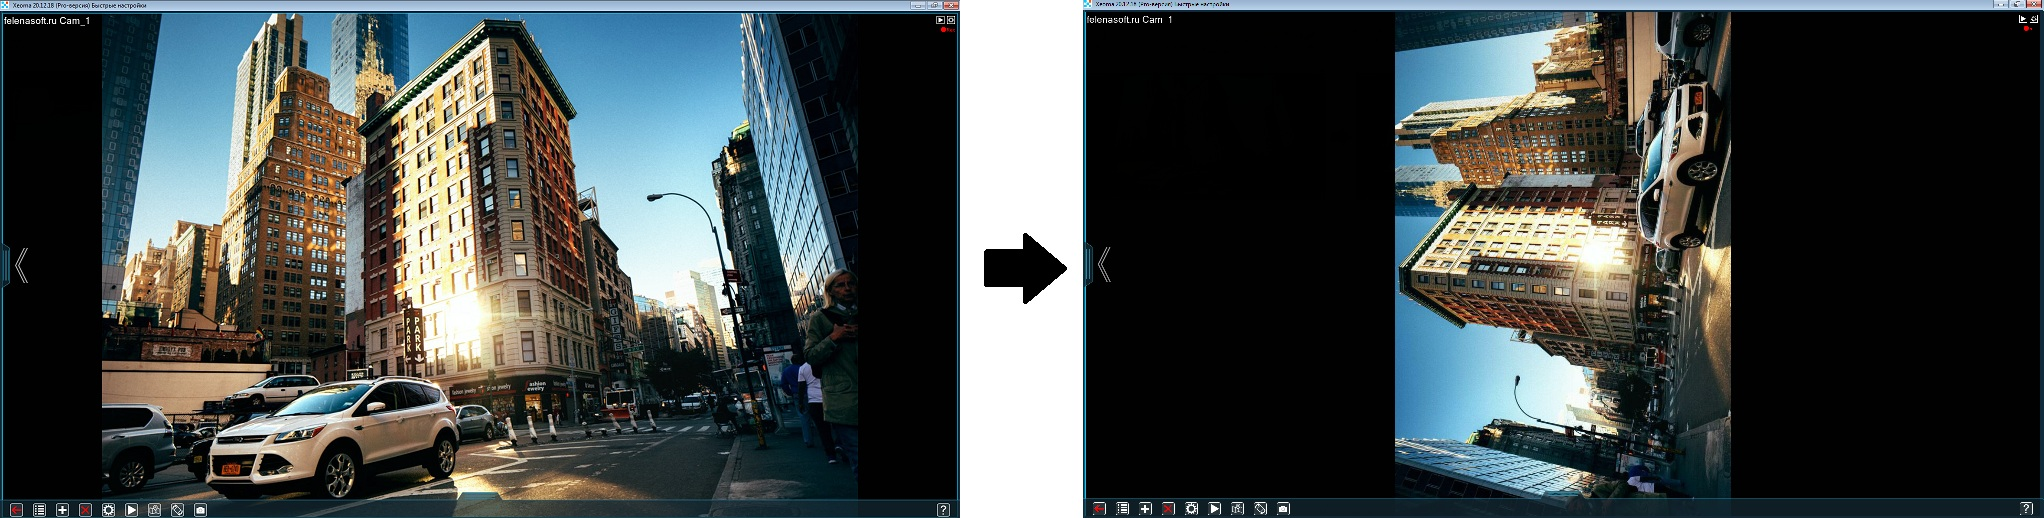 Image rotate module in cctv software Xeoma